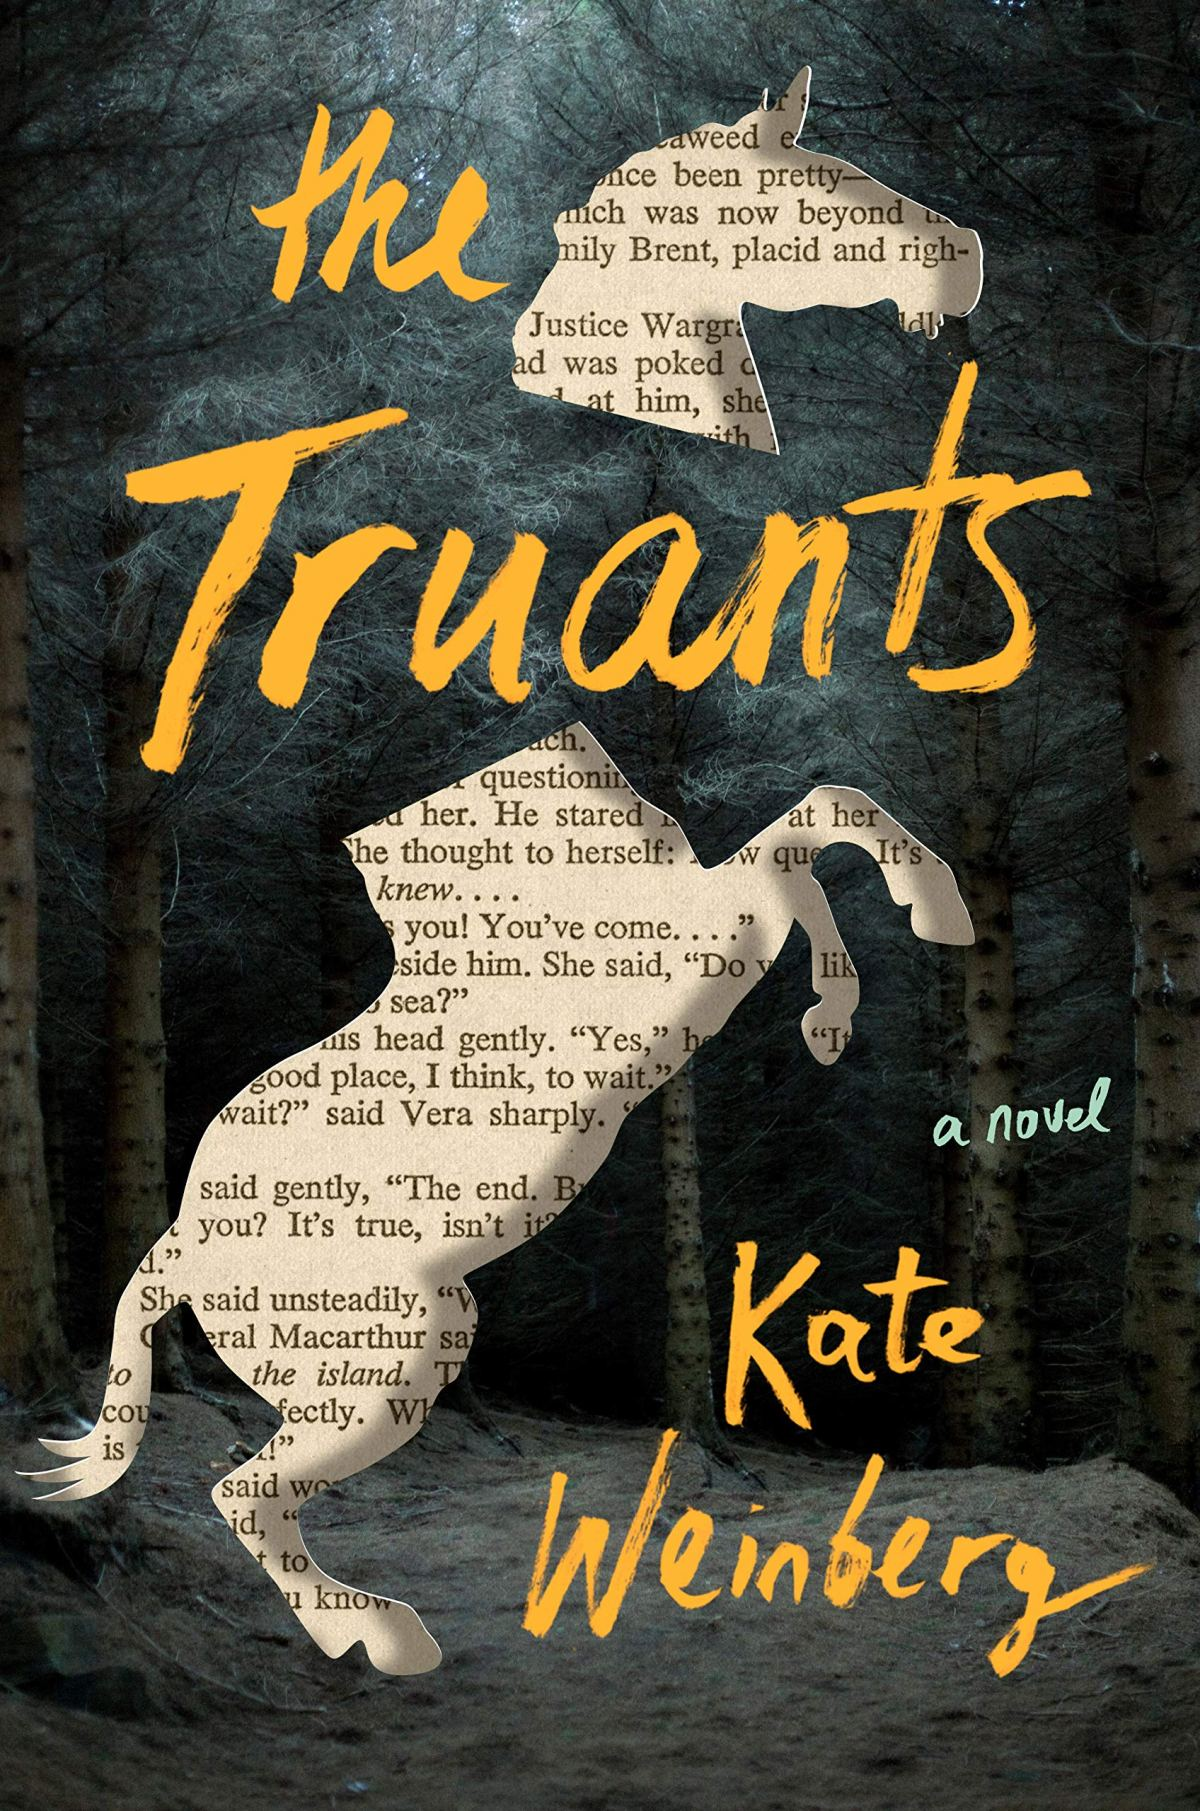 The Truants book cover with a cutout of a horse against a dark forest.